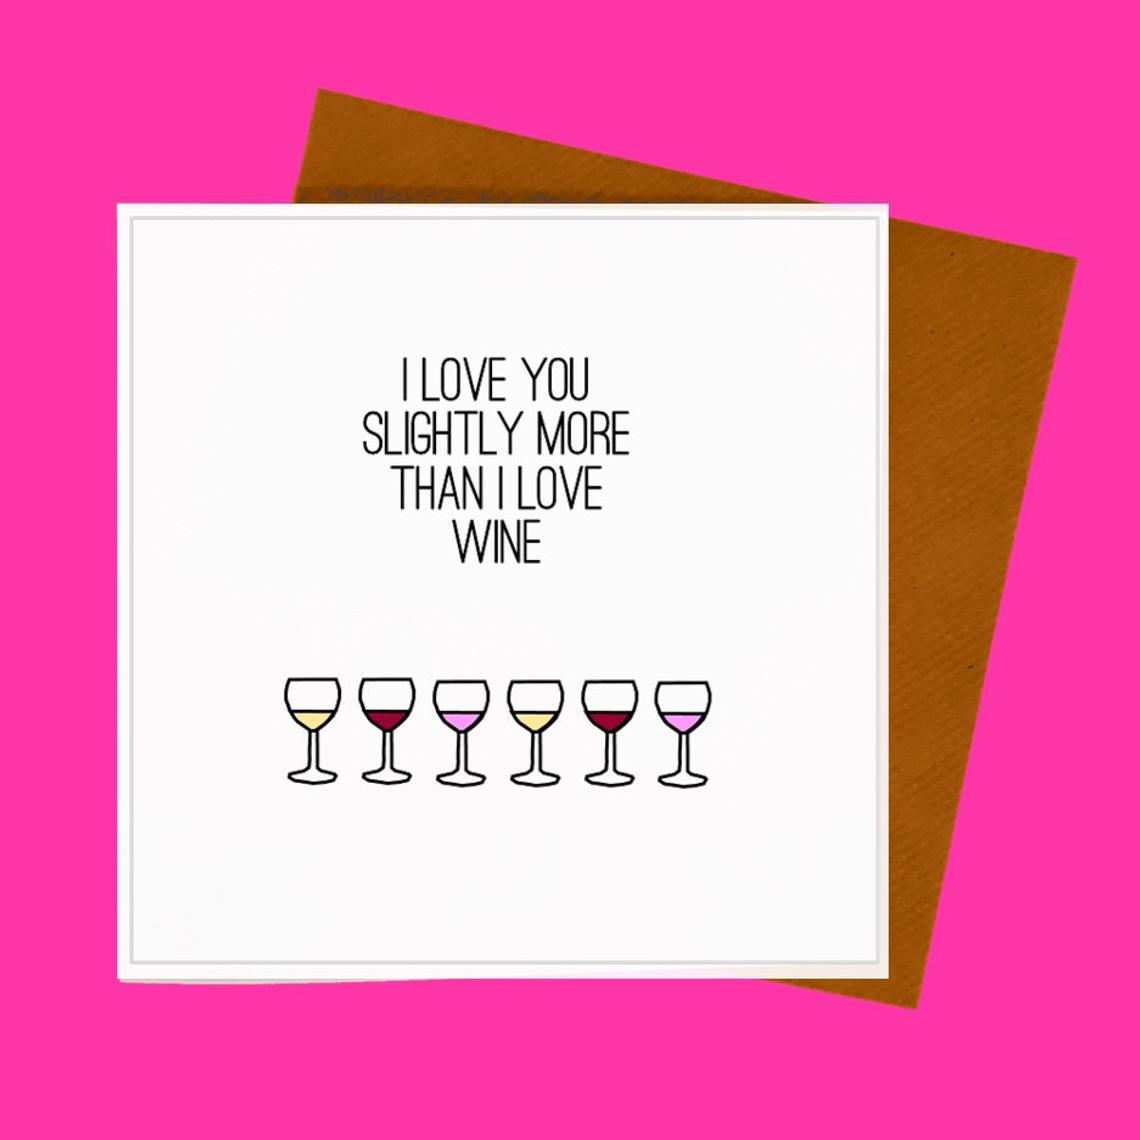 Funny Valentine's Day Cards To Give To Someone Who Loves Wine